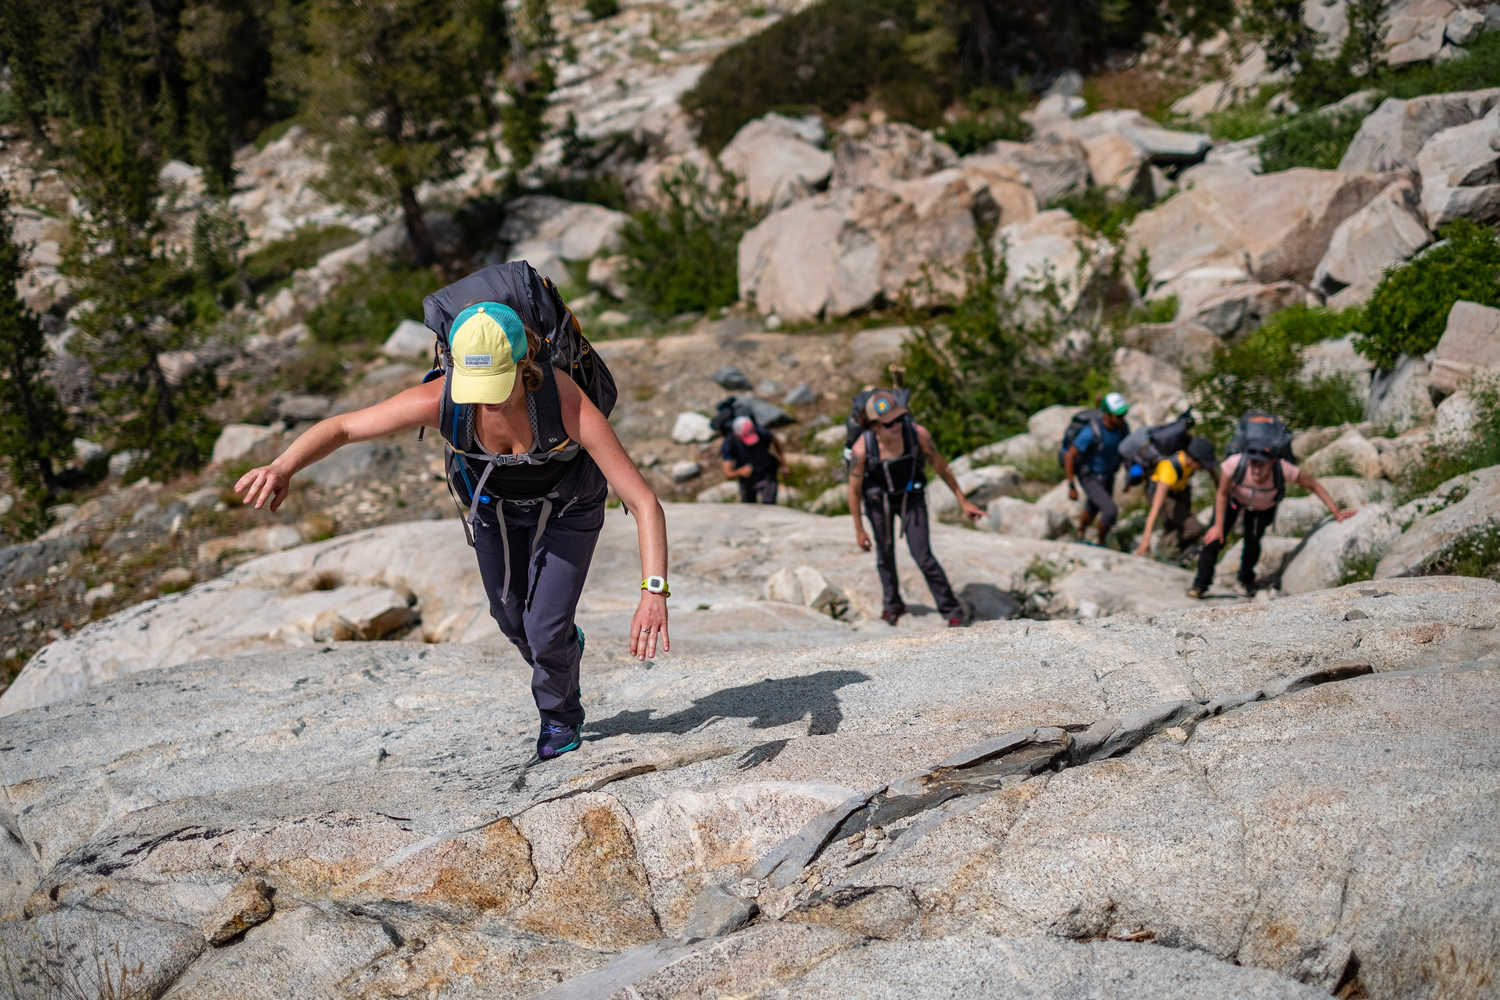 Some trails in Yosemite can be steep and rocky and involve walking on granite slabs, which requires good footwear.   Photo by Duncan Cheung.